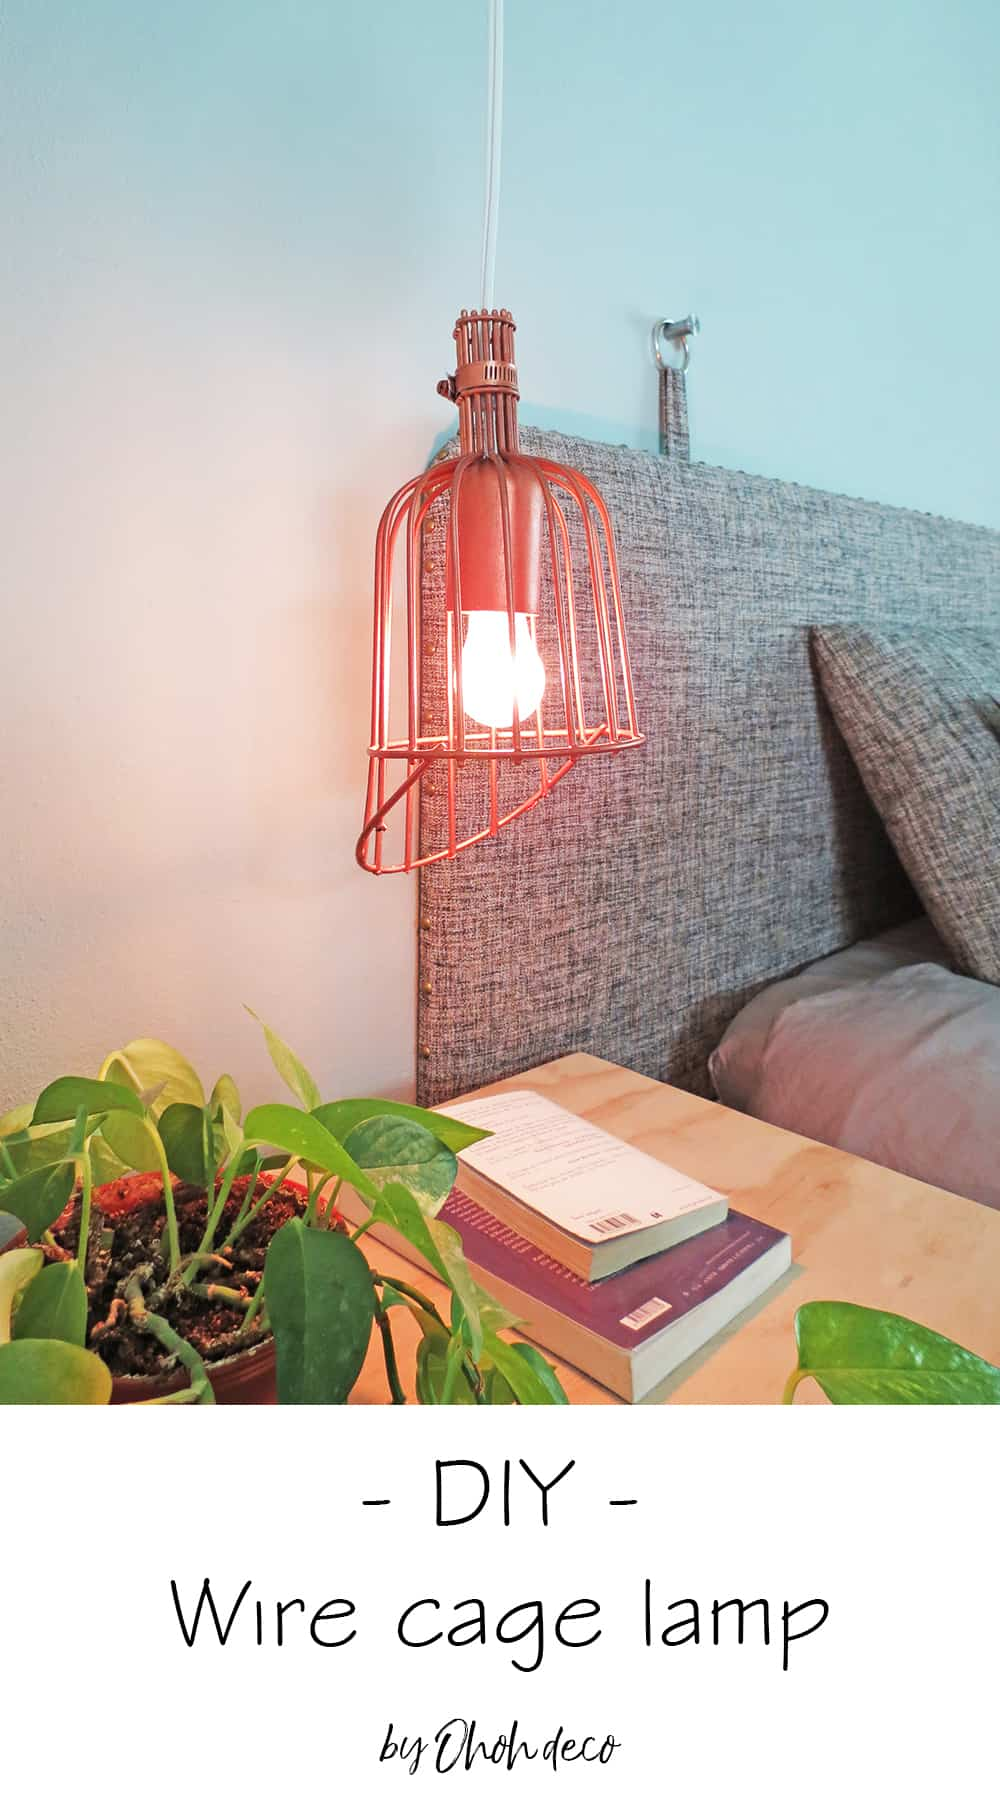 DIY wire cage lamp #light #lighting #diy #cagelamp #copper